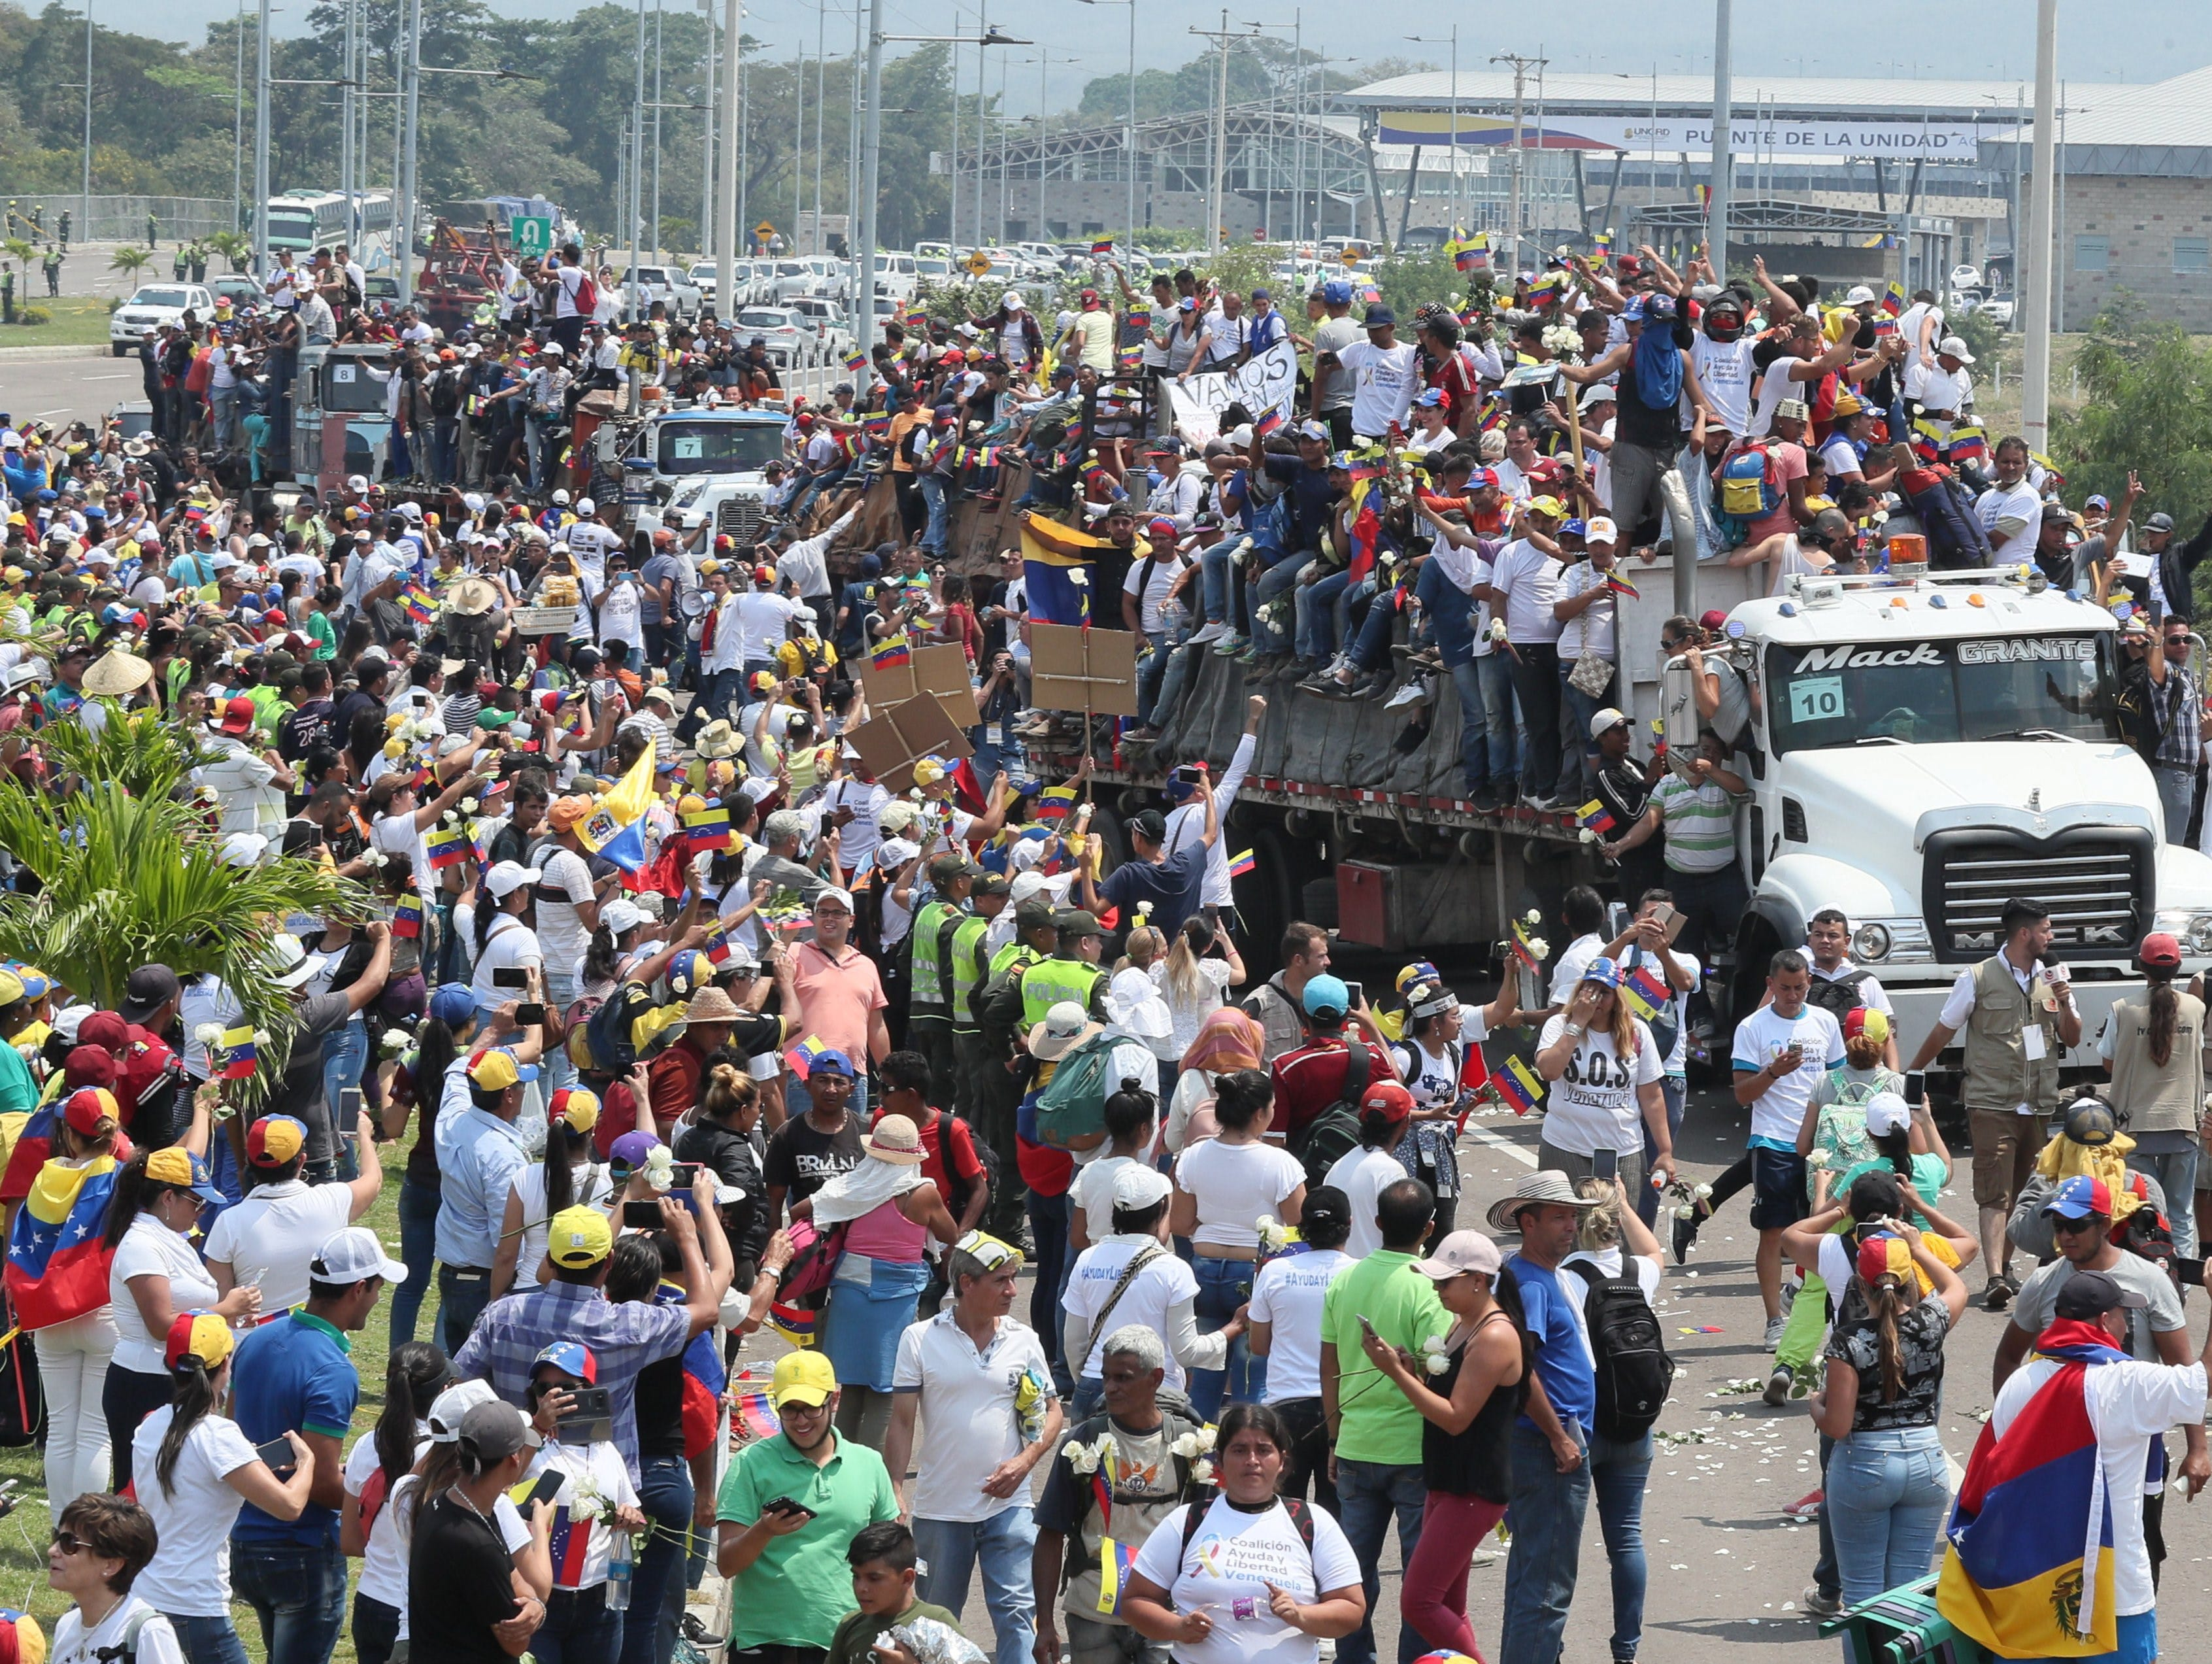 Venezuelan citizens riding in trucks, in Cucuta, Colombia on Feb. 23, 2019. Hundreds of Venezuelans gathered today on the Colombian side of the Simon Bolivar international bridge that connects Cucuta with San Antonio, in the Venezuelan state of Tachira, to form a corridor that allows humanitarian aid to go to their country.